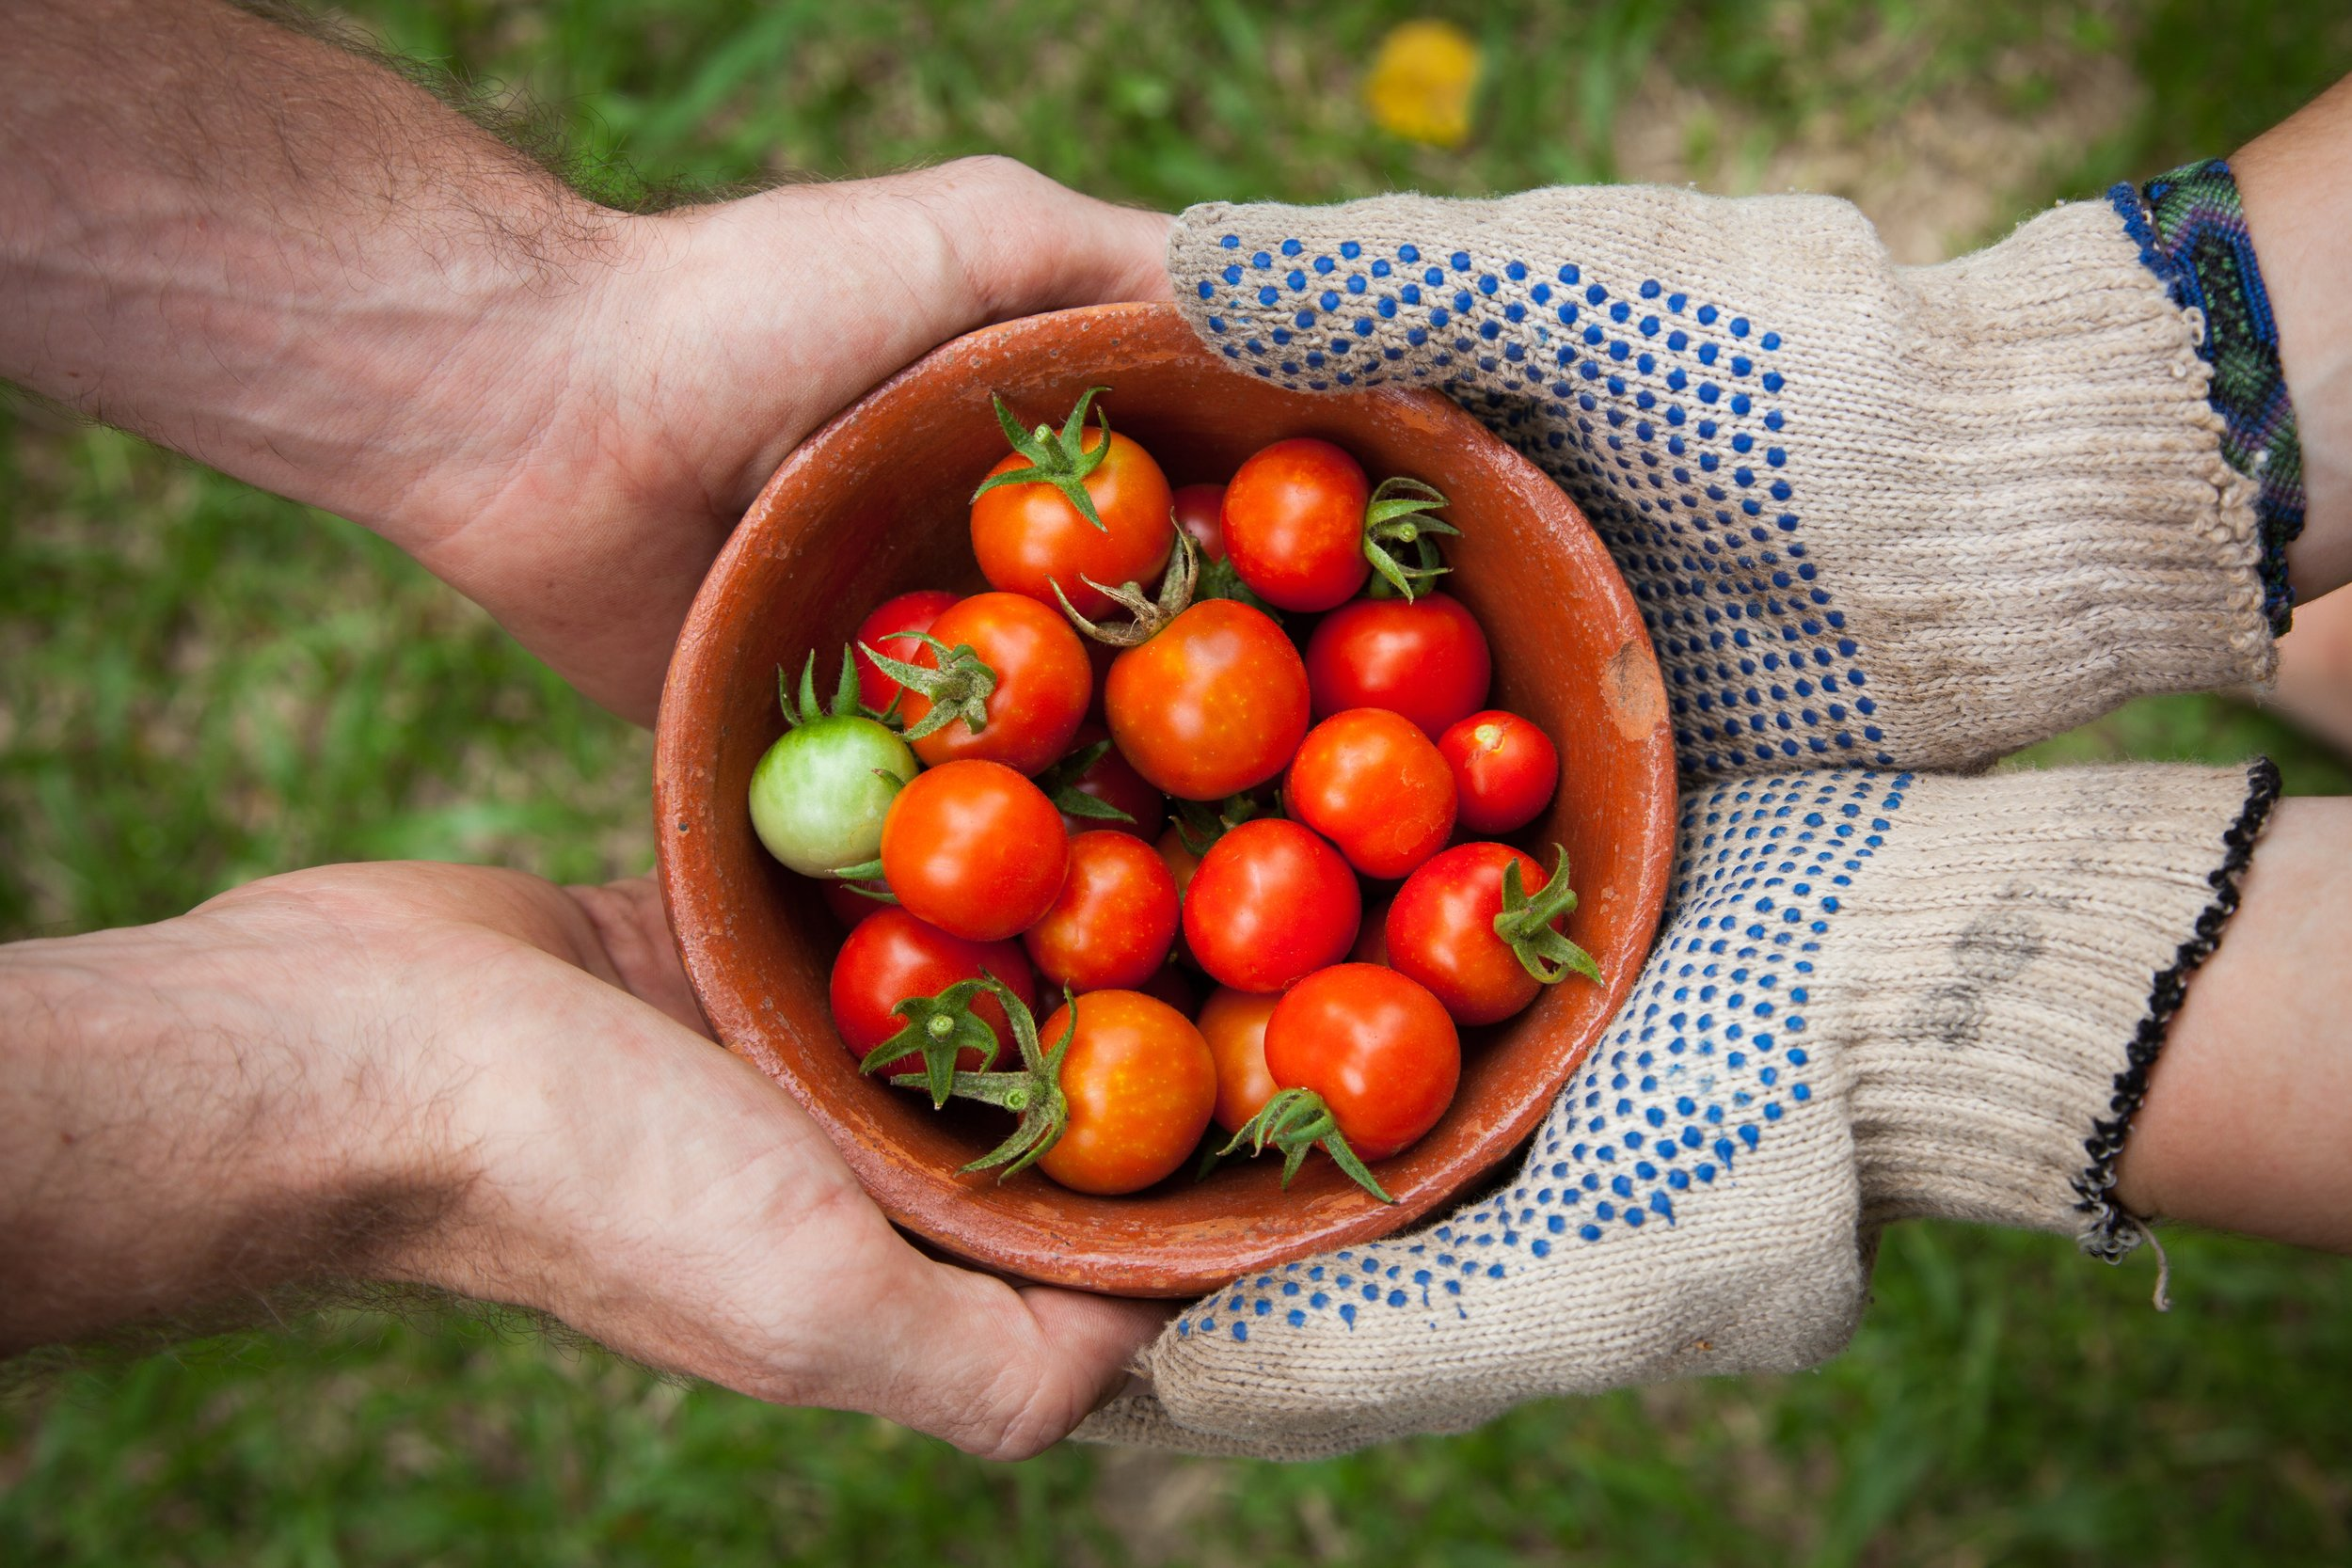 gardener-giving-tomatoes-elaine-casap-unsplash.jpg